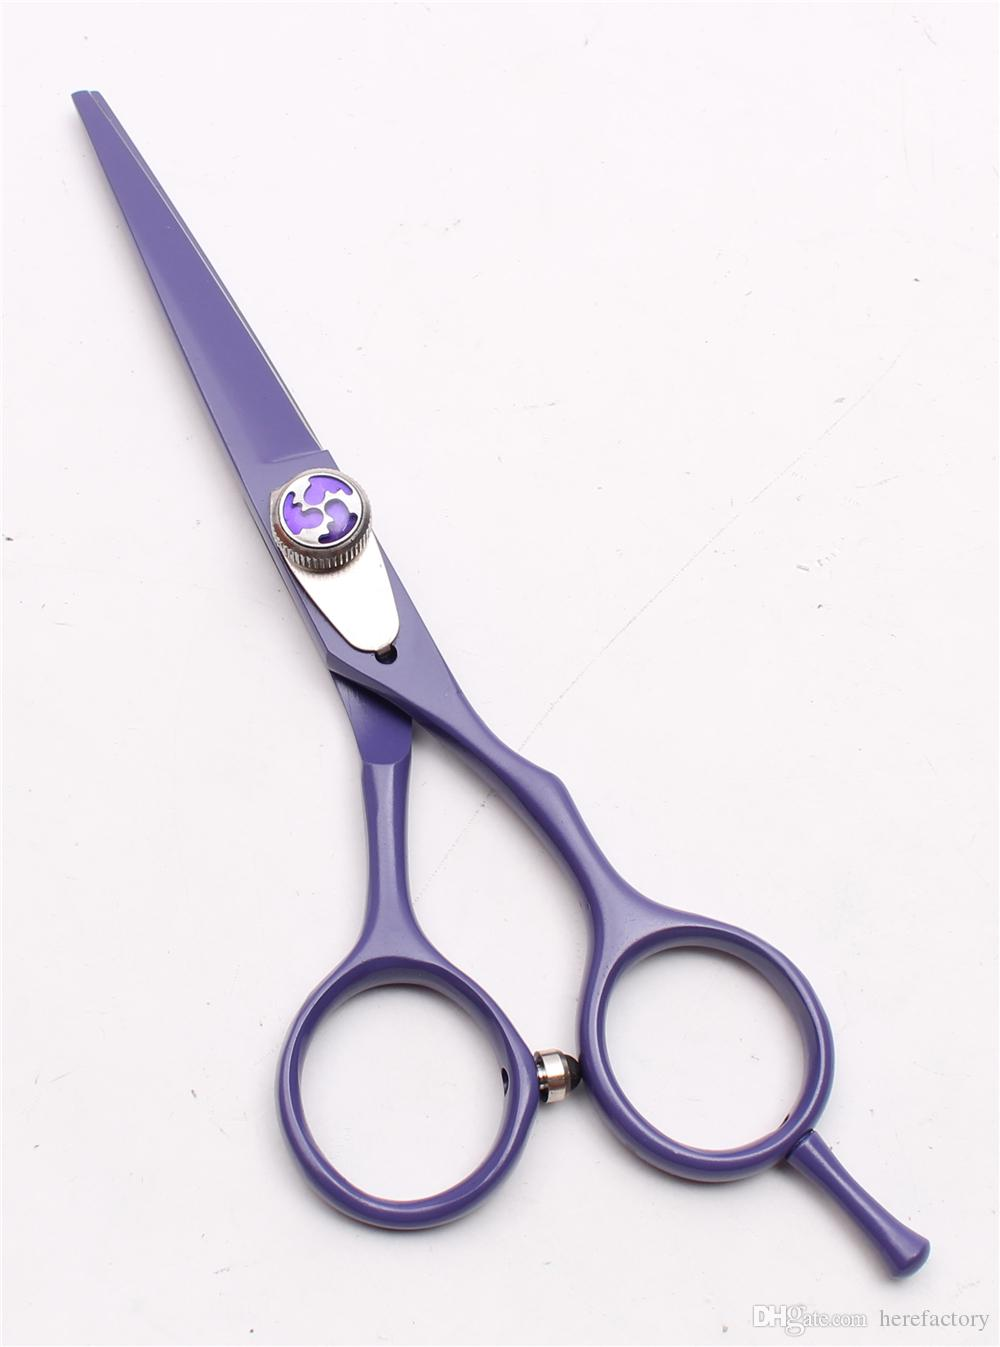 """C1018 5.5"""" Customized Logo High Quality Professional Human Hair Scissors Barbers' Hairdressing Scissors Cutting Thinning Shears Style Tools"""